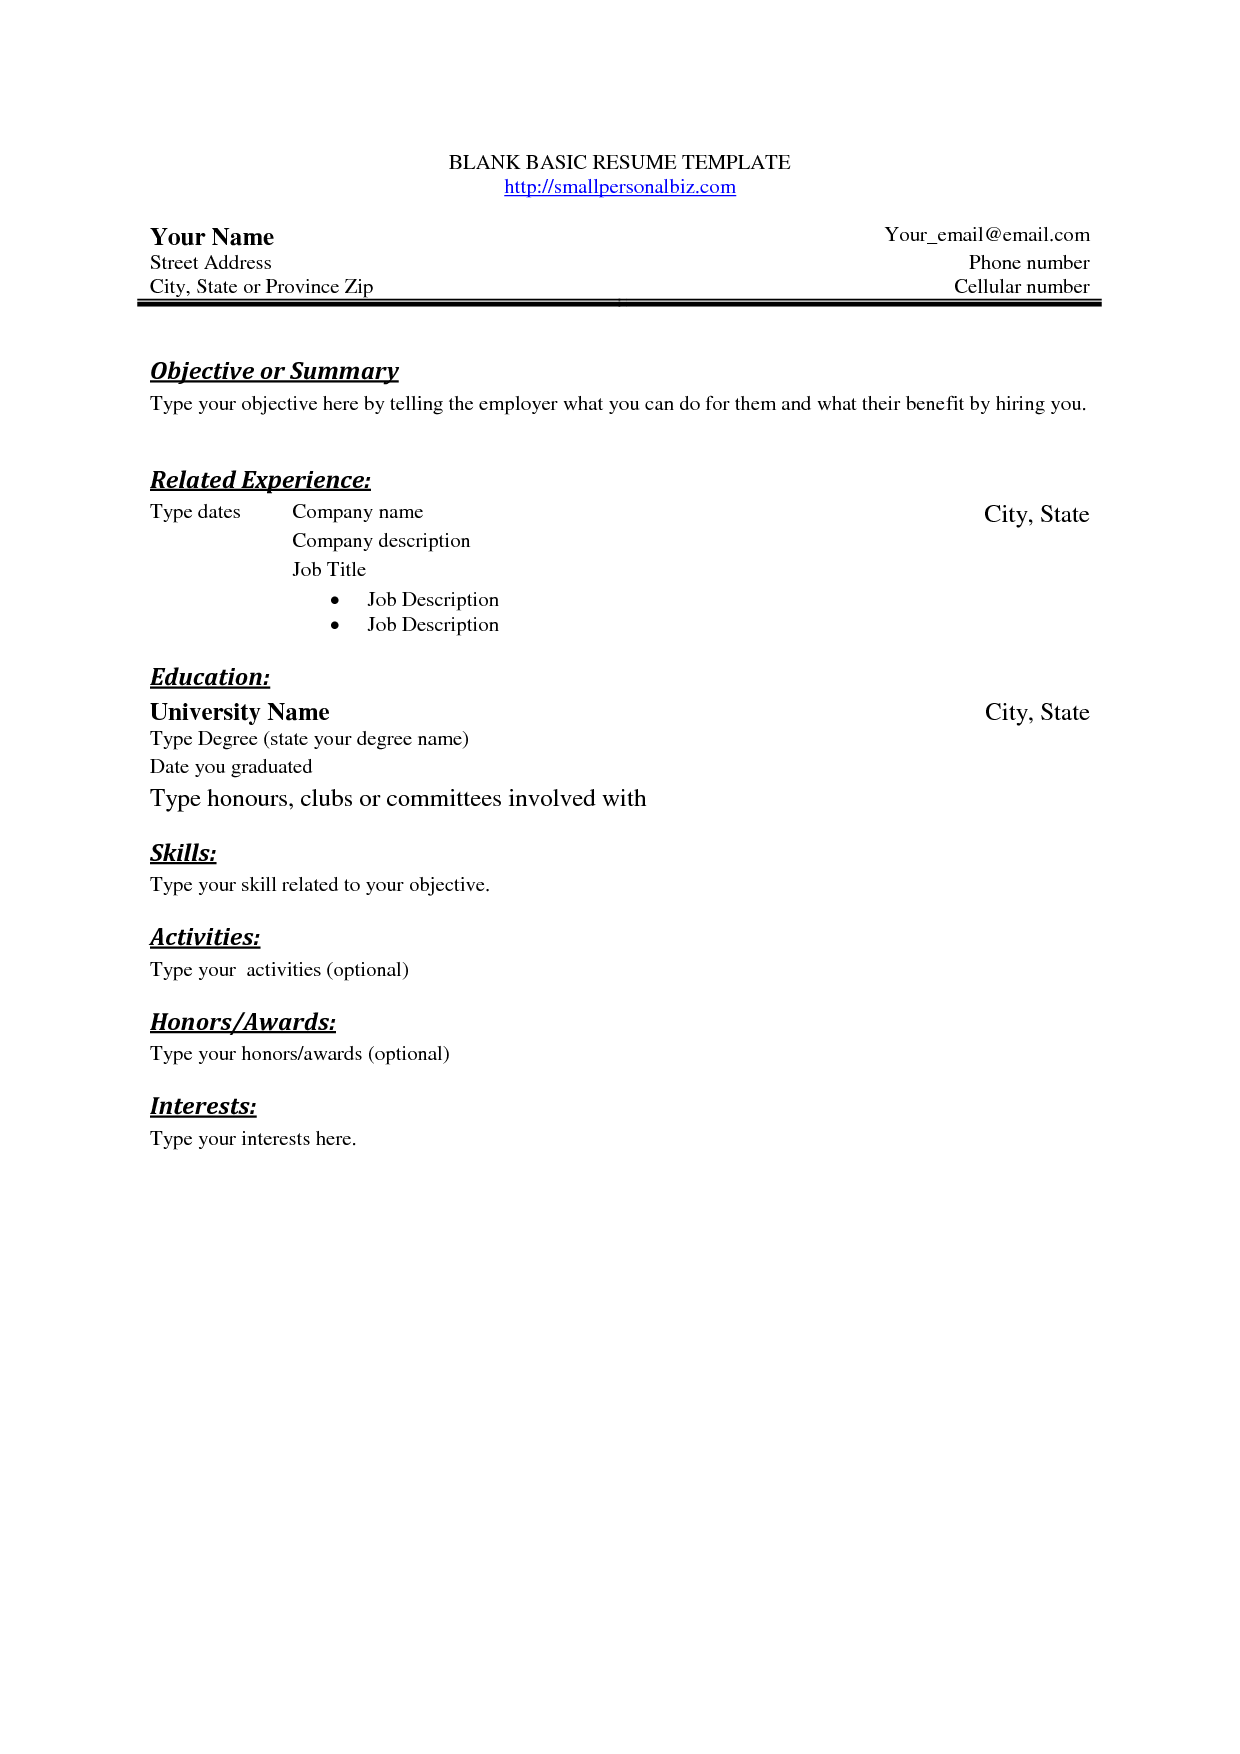 Basic Resume Simple Stylist And Luxury Simple Resume Layout 10 Free Basic Blank Resume